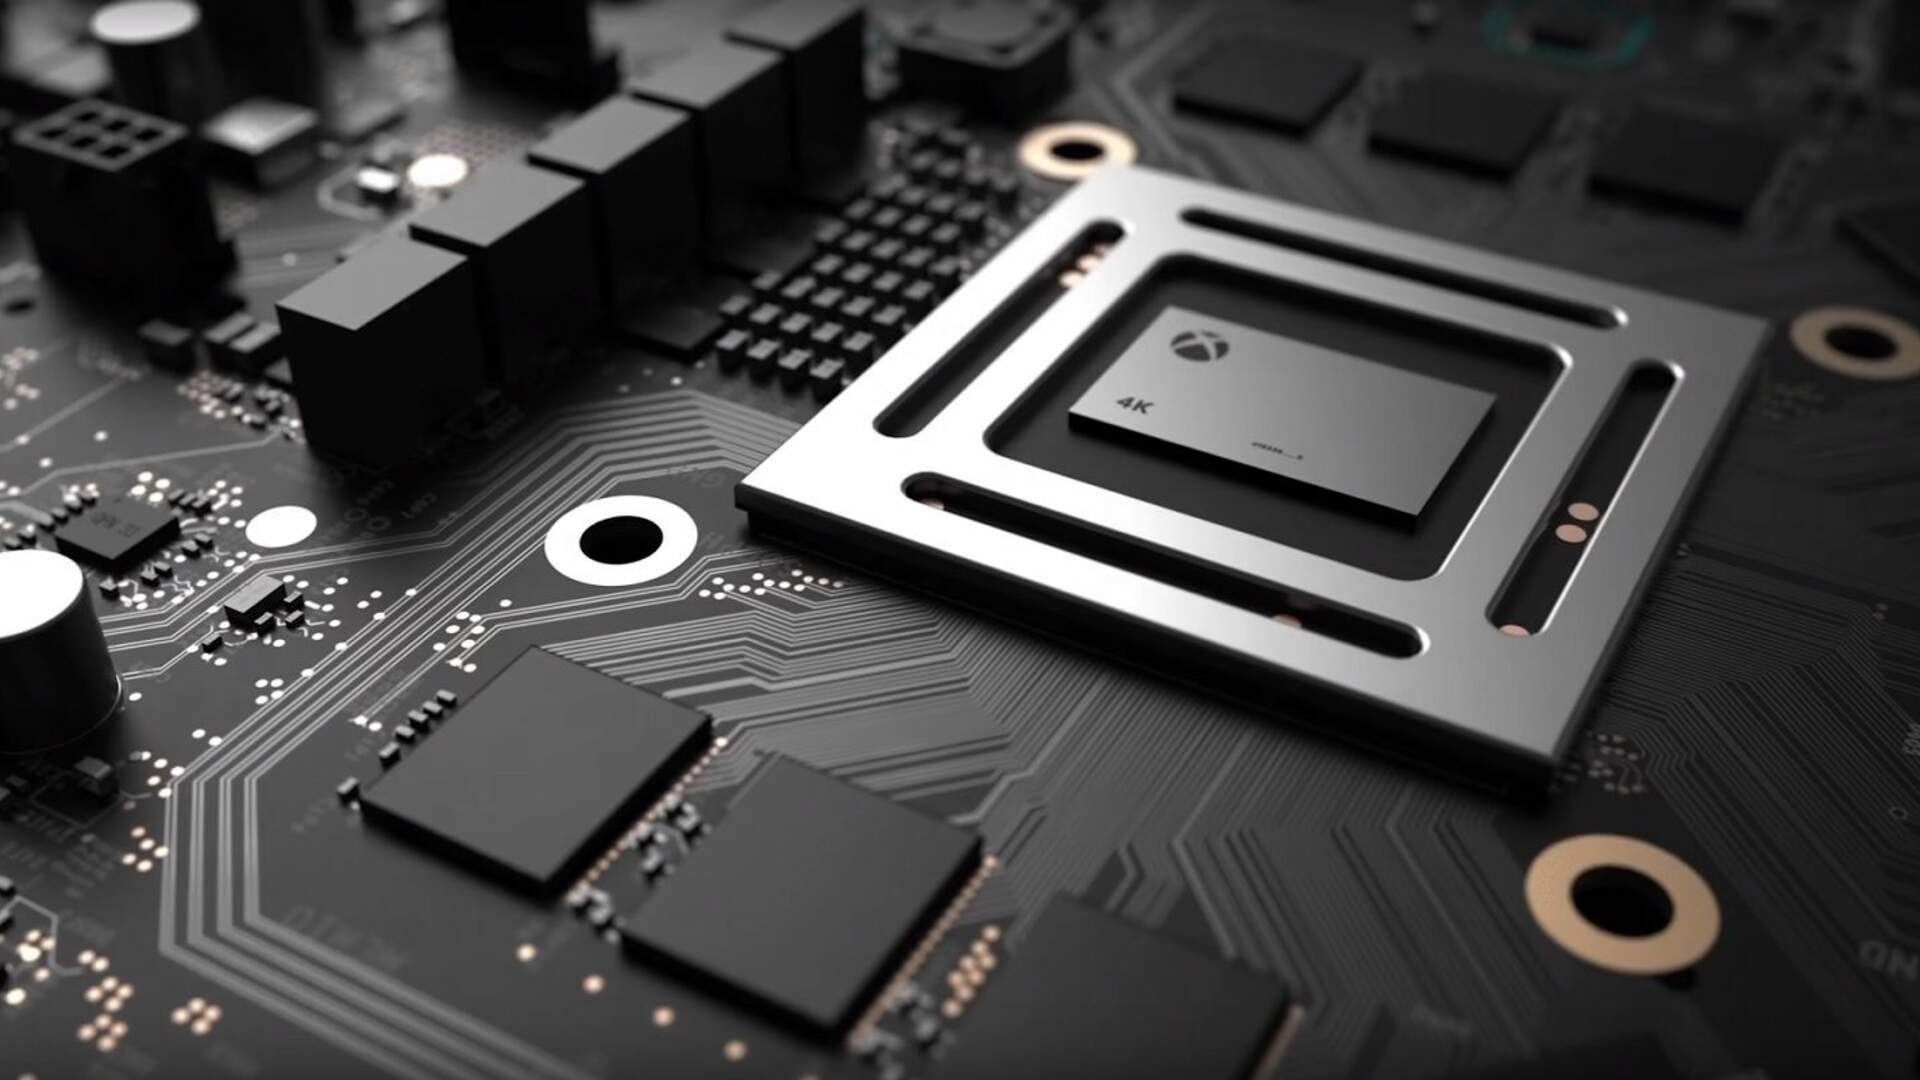 Xbox Scorpio Unlocks an Extra Gigabyte of RAM for Developers to Use